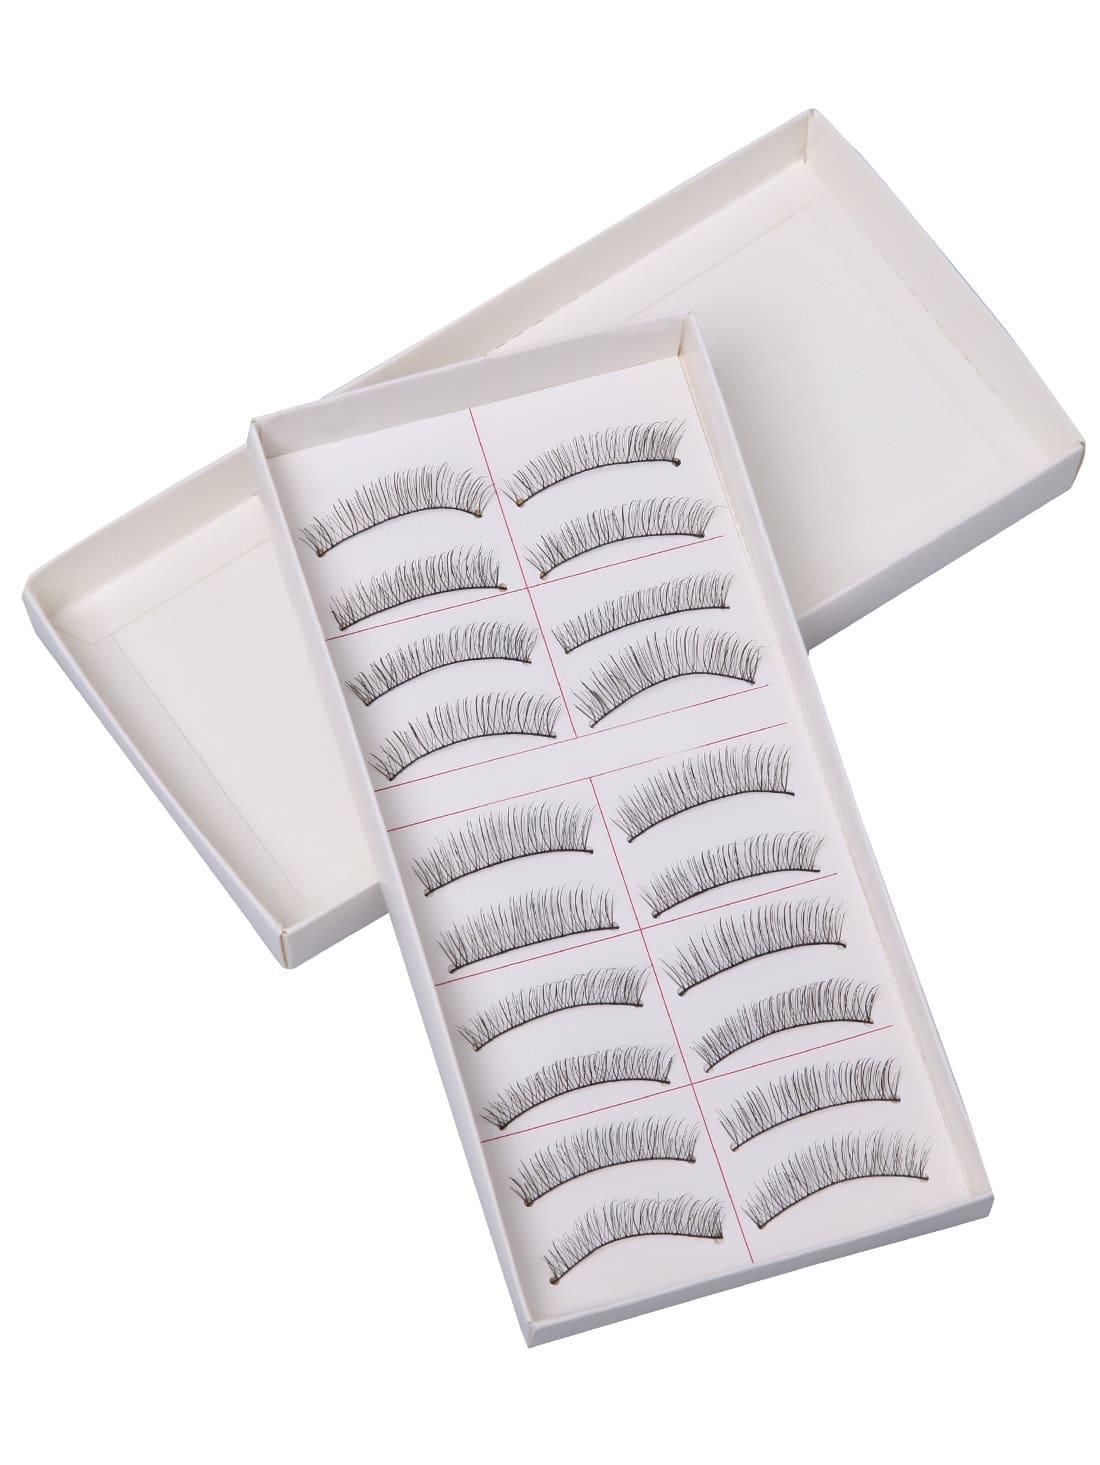 Natural False EyelashesNatural False Eyelashes<br><br>color: Black<br>size: None